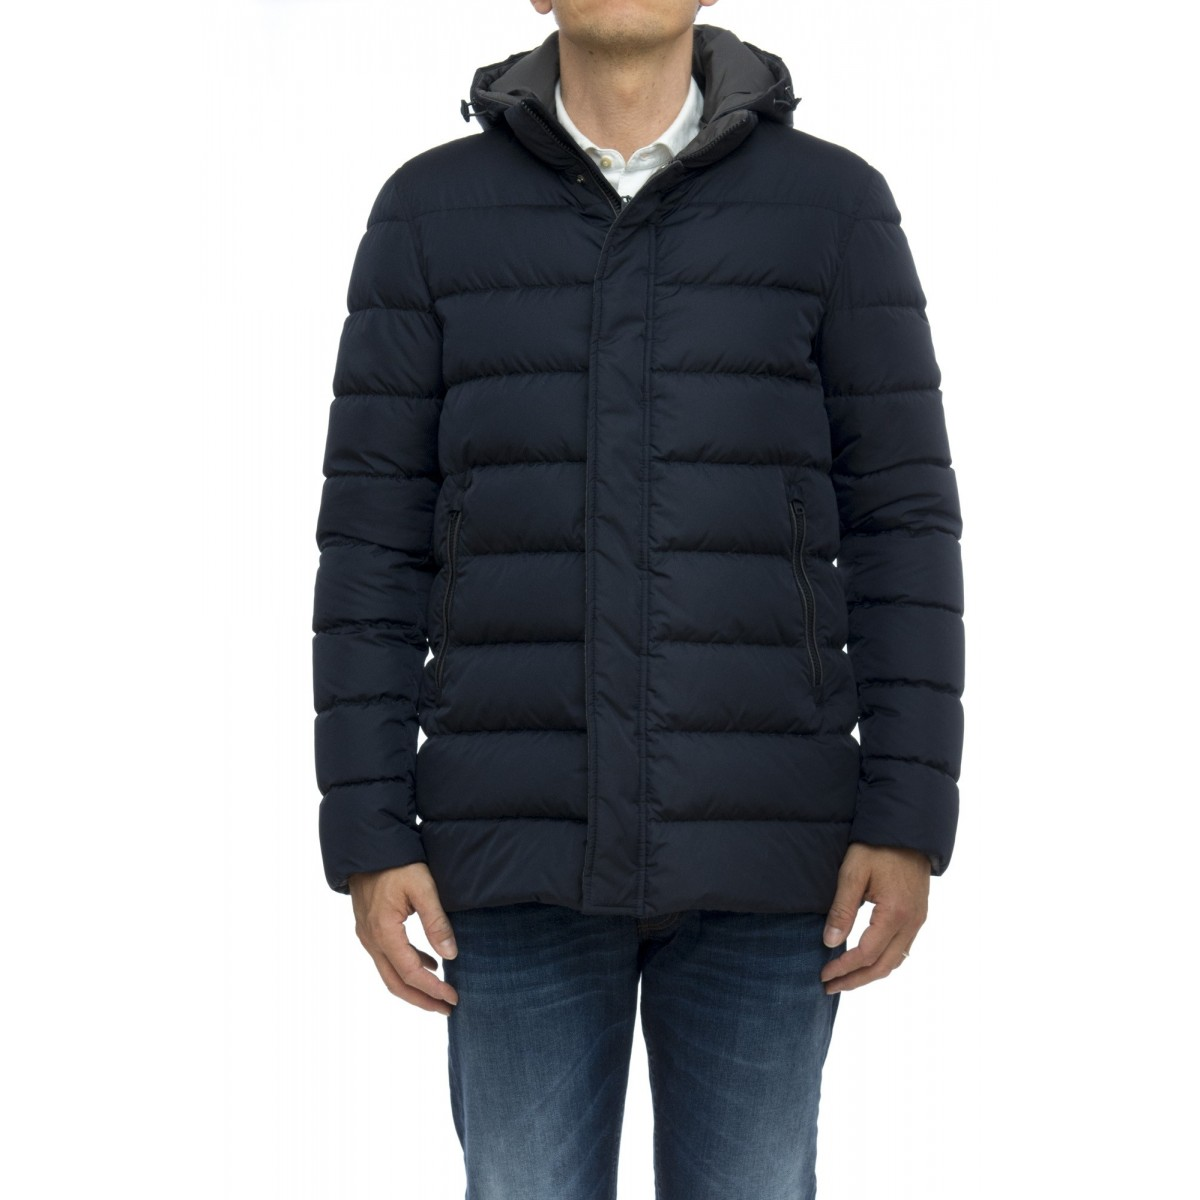 Down Jacket Man- Pi0364u 12004